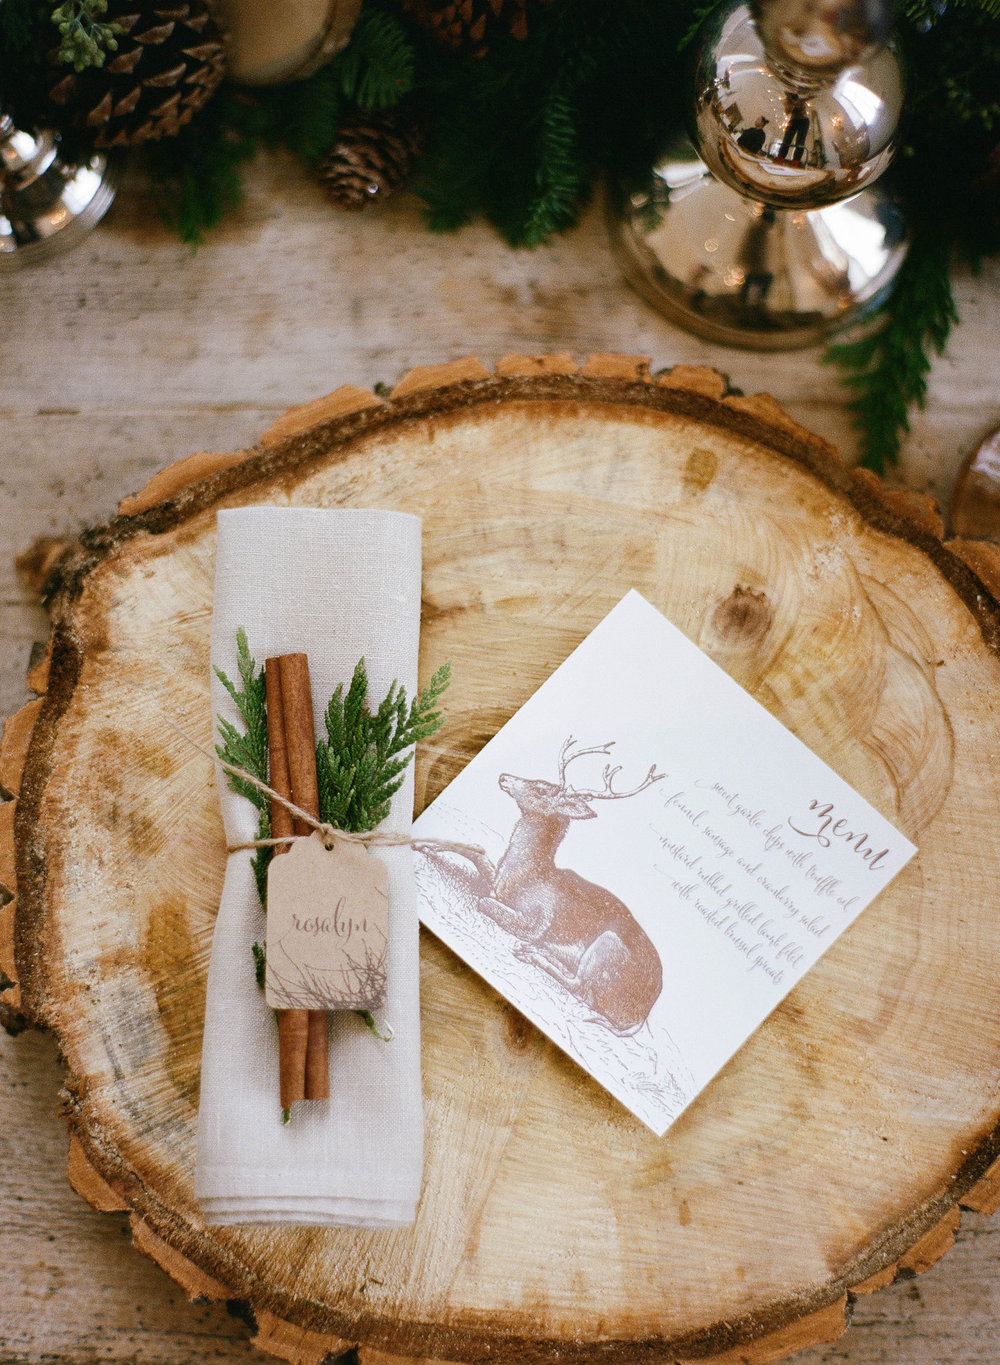 Cozy Winter Wedding Inspiration | Romantic Winter Wedding Inspiration | Washington Schoolhouse Wedding | Michelle Leo Events | Utah Event Planner and Designer | Jacque Lynn Photography